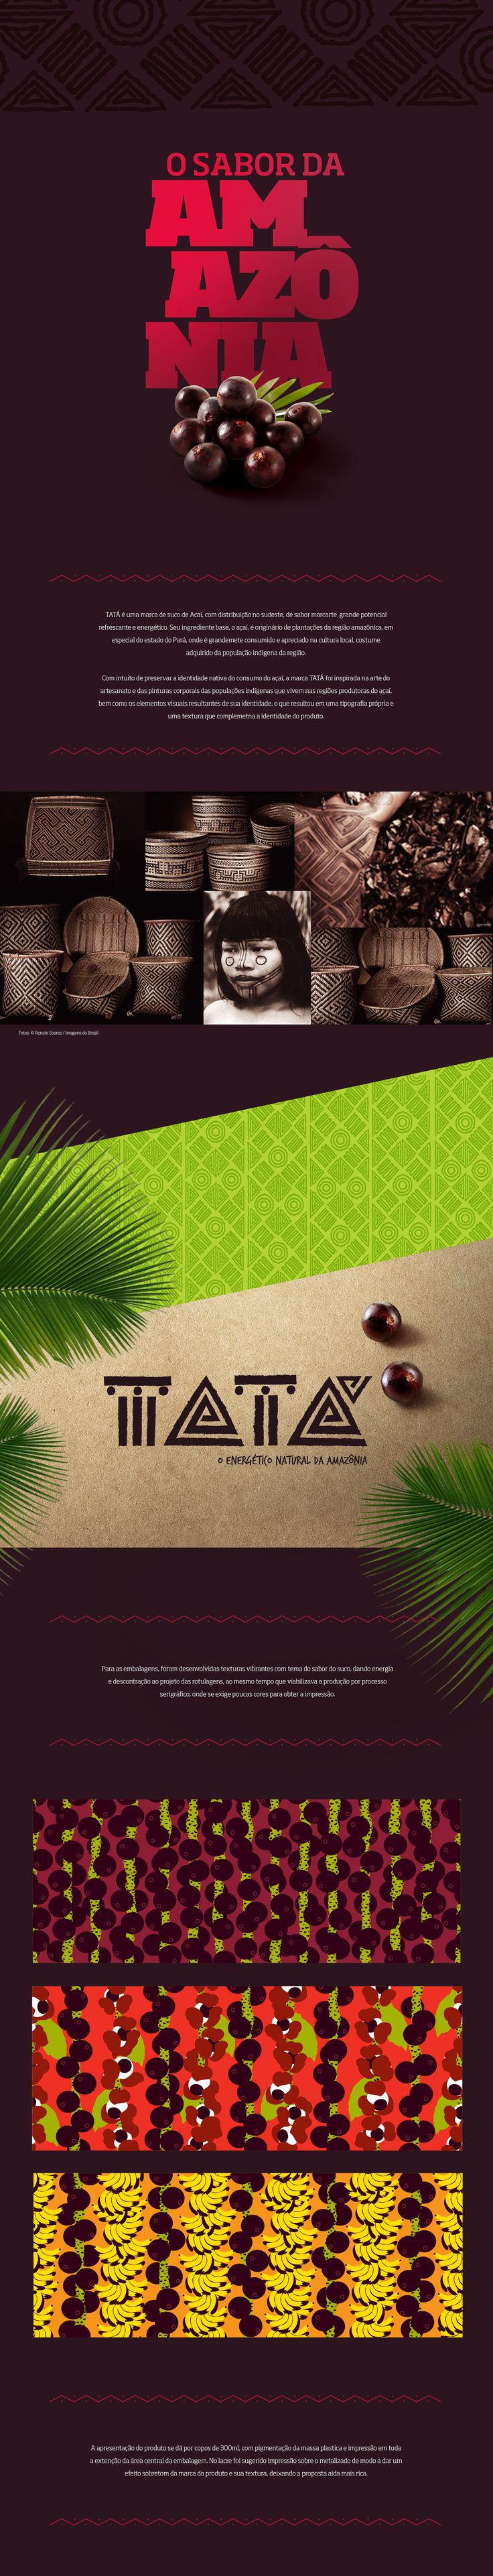 Açaí Tatá on Behance